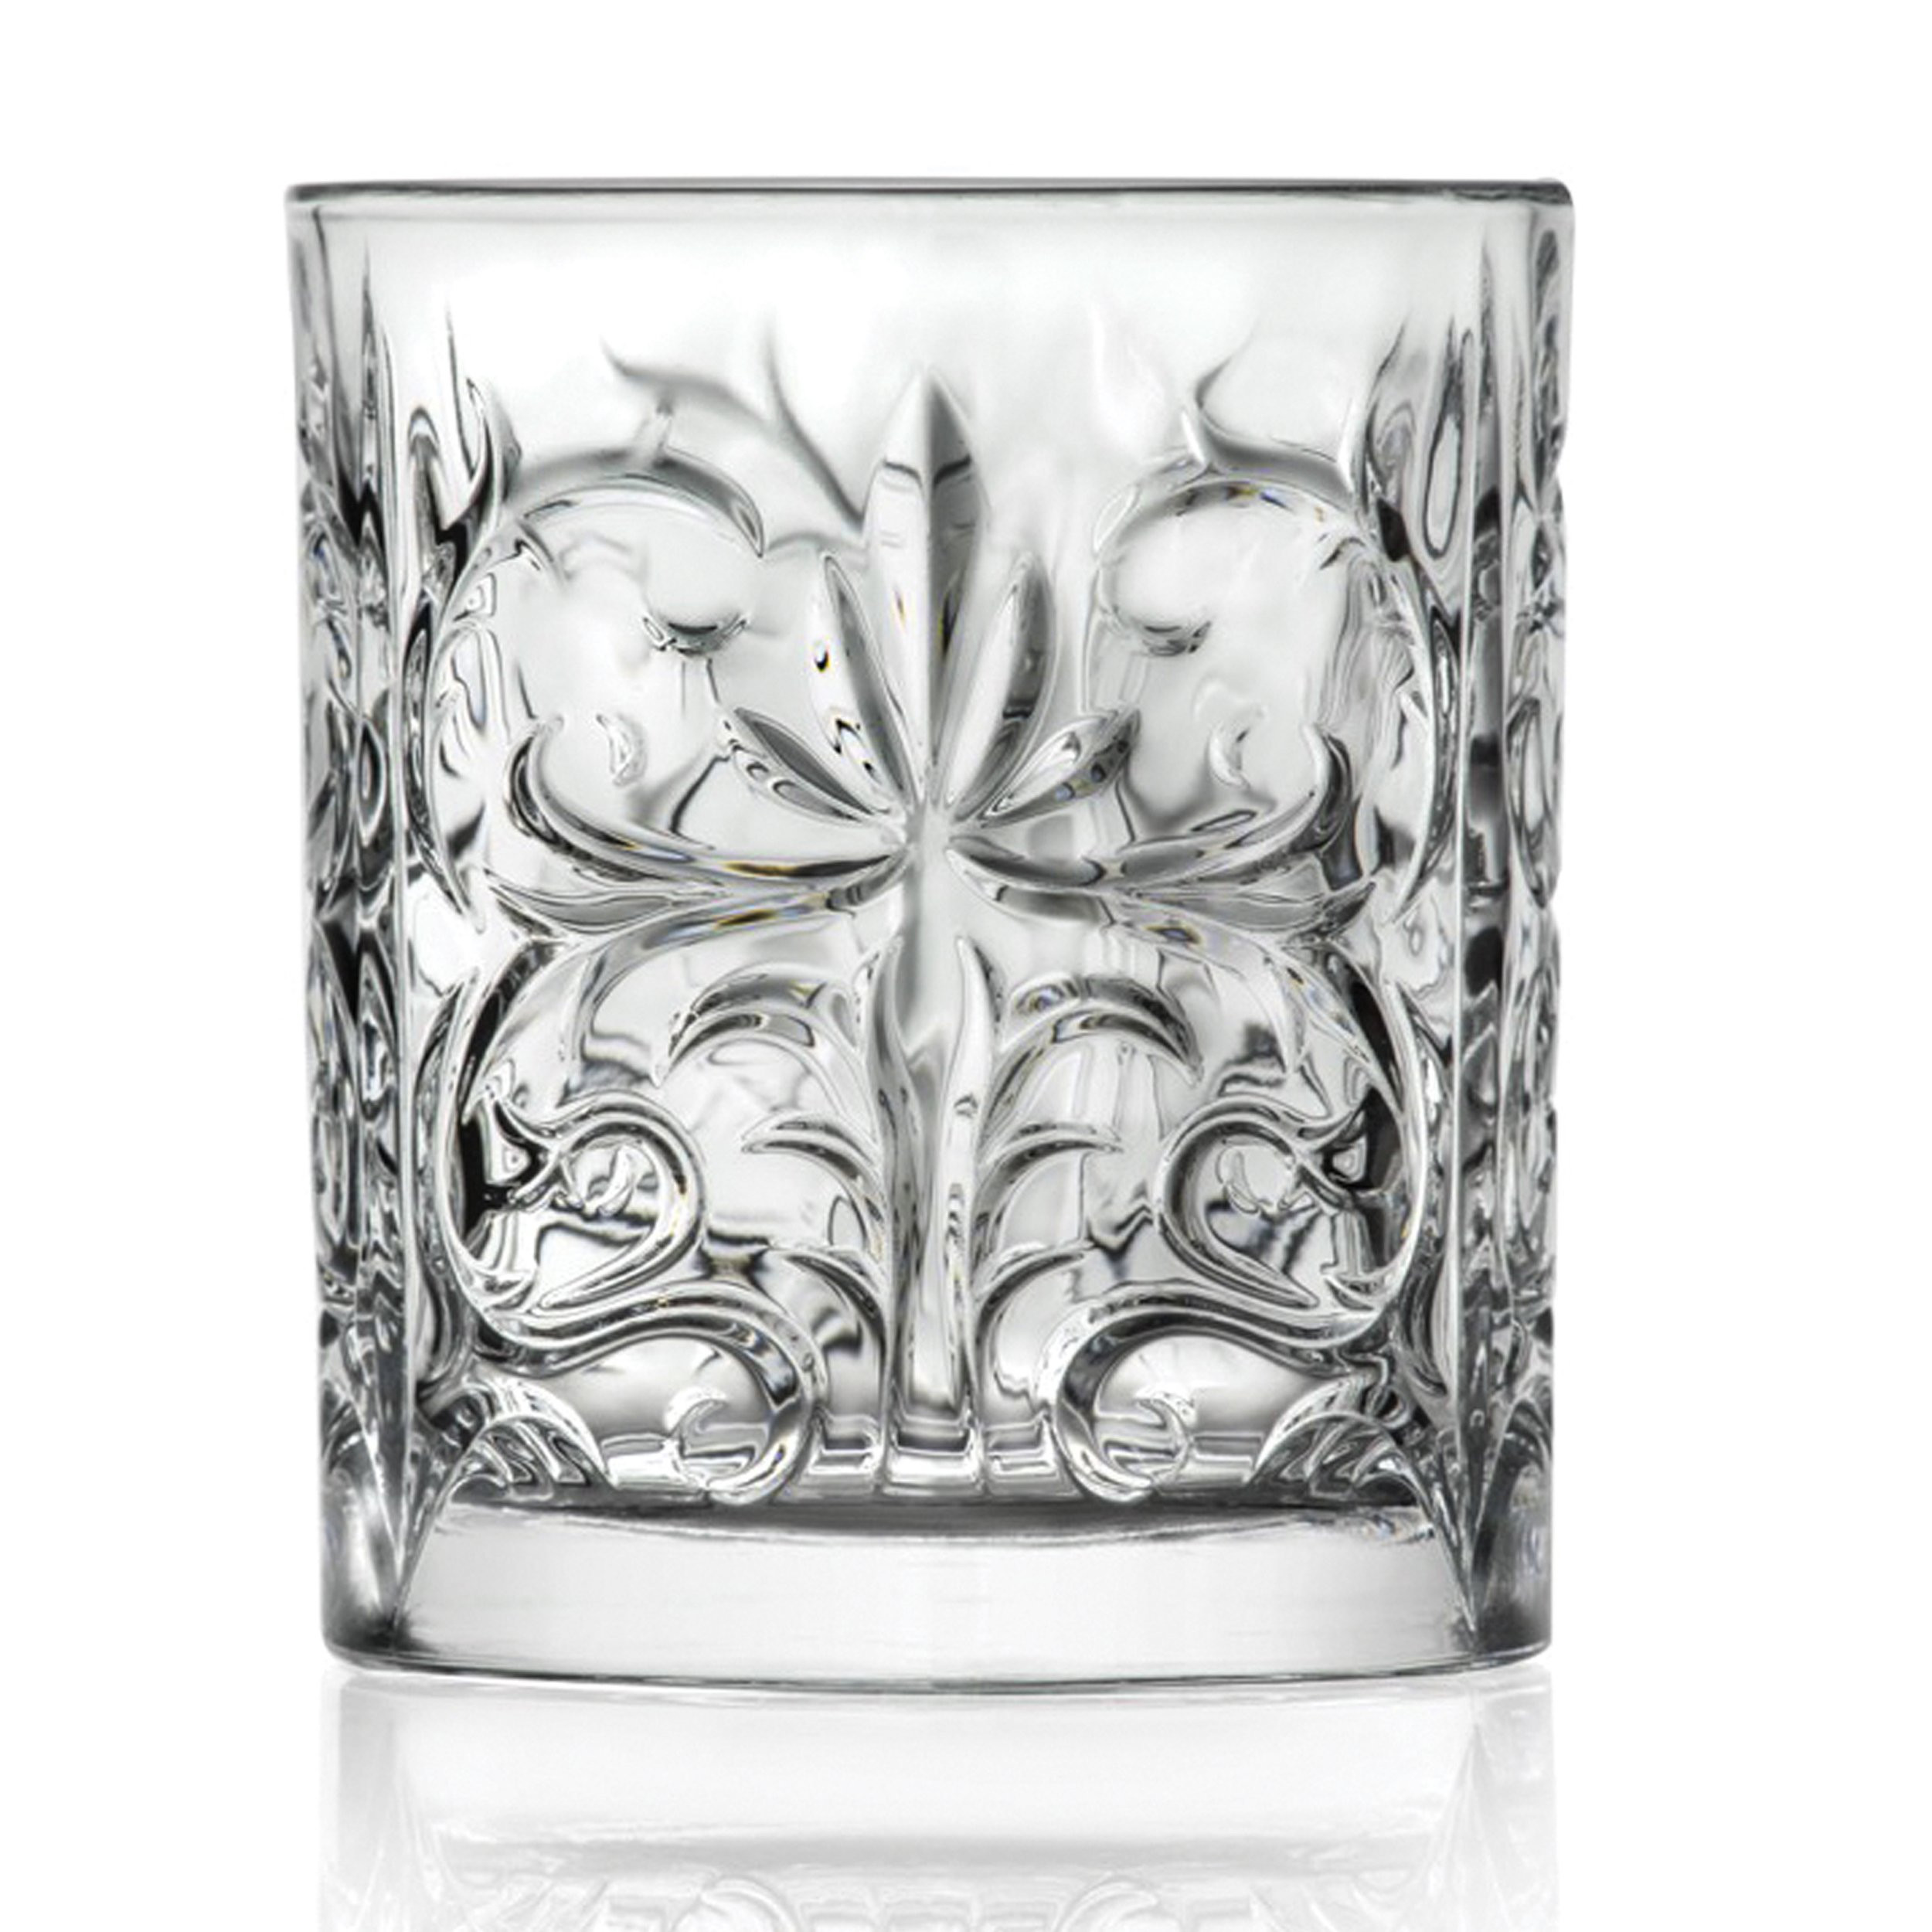 southern living tuscan vase of shop lorren home trendstattoo collection double old fashion set of throughout shop lorren home trendstattoo collection double old fashion set of 6 free shipping on orders over 45 overstock com 15859565